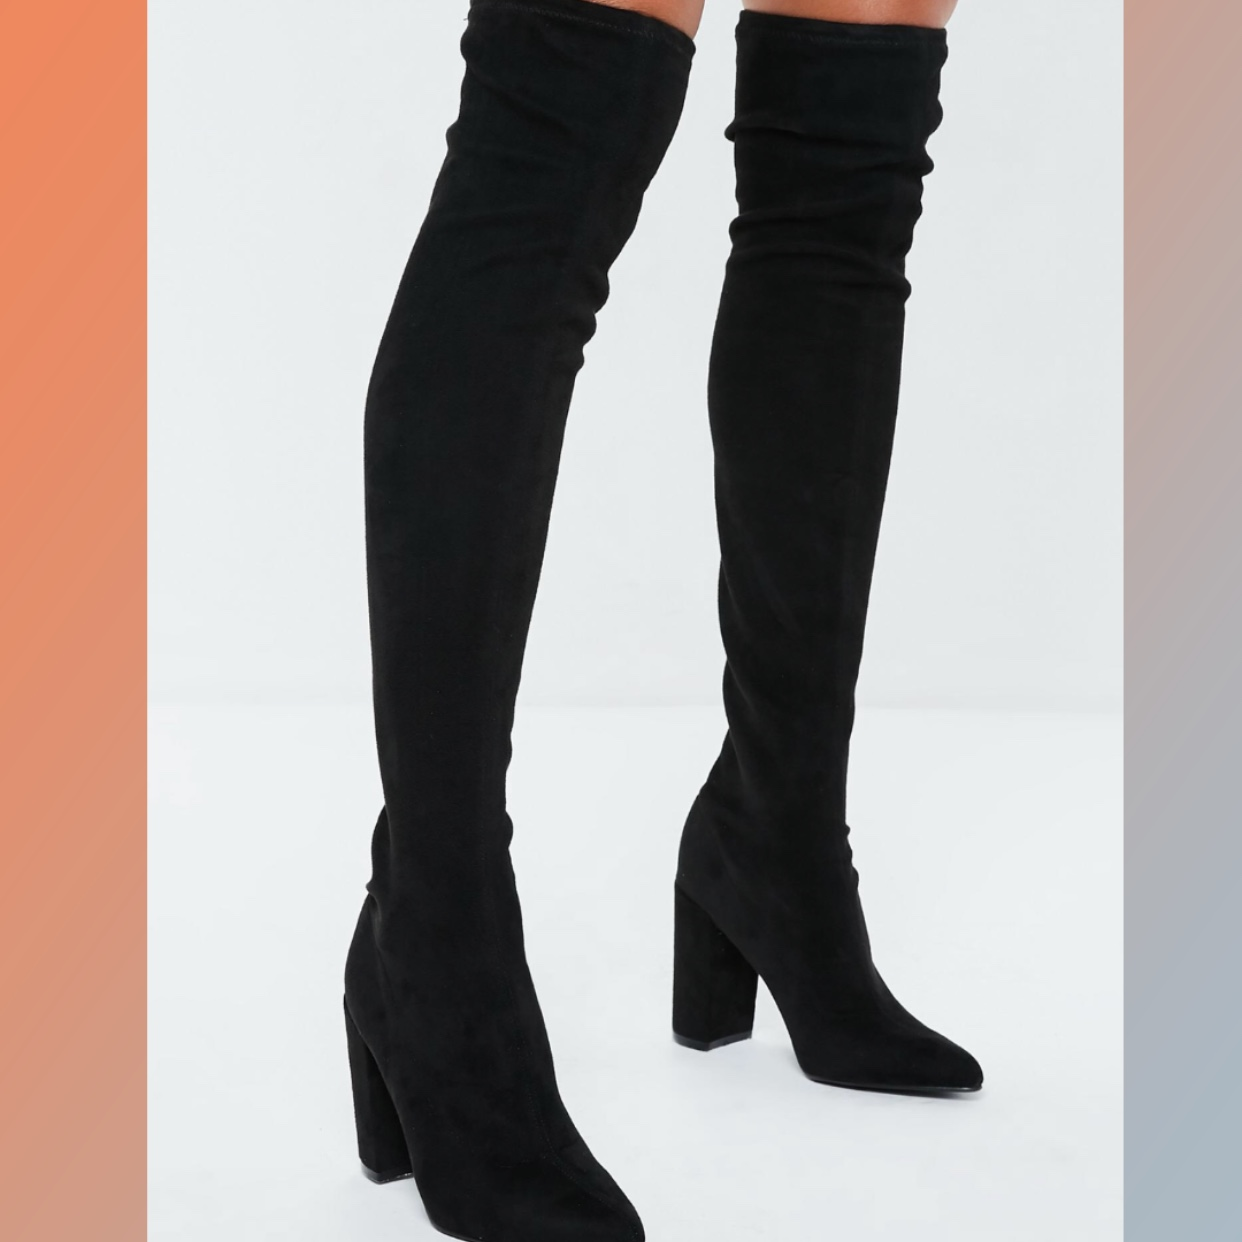 3ead9ec4137 Missguided Knee High Boots - Worm Once, Perfect... - Depop